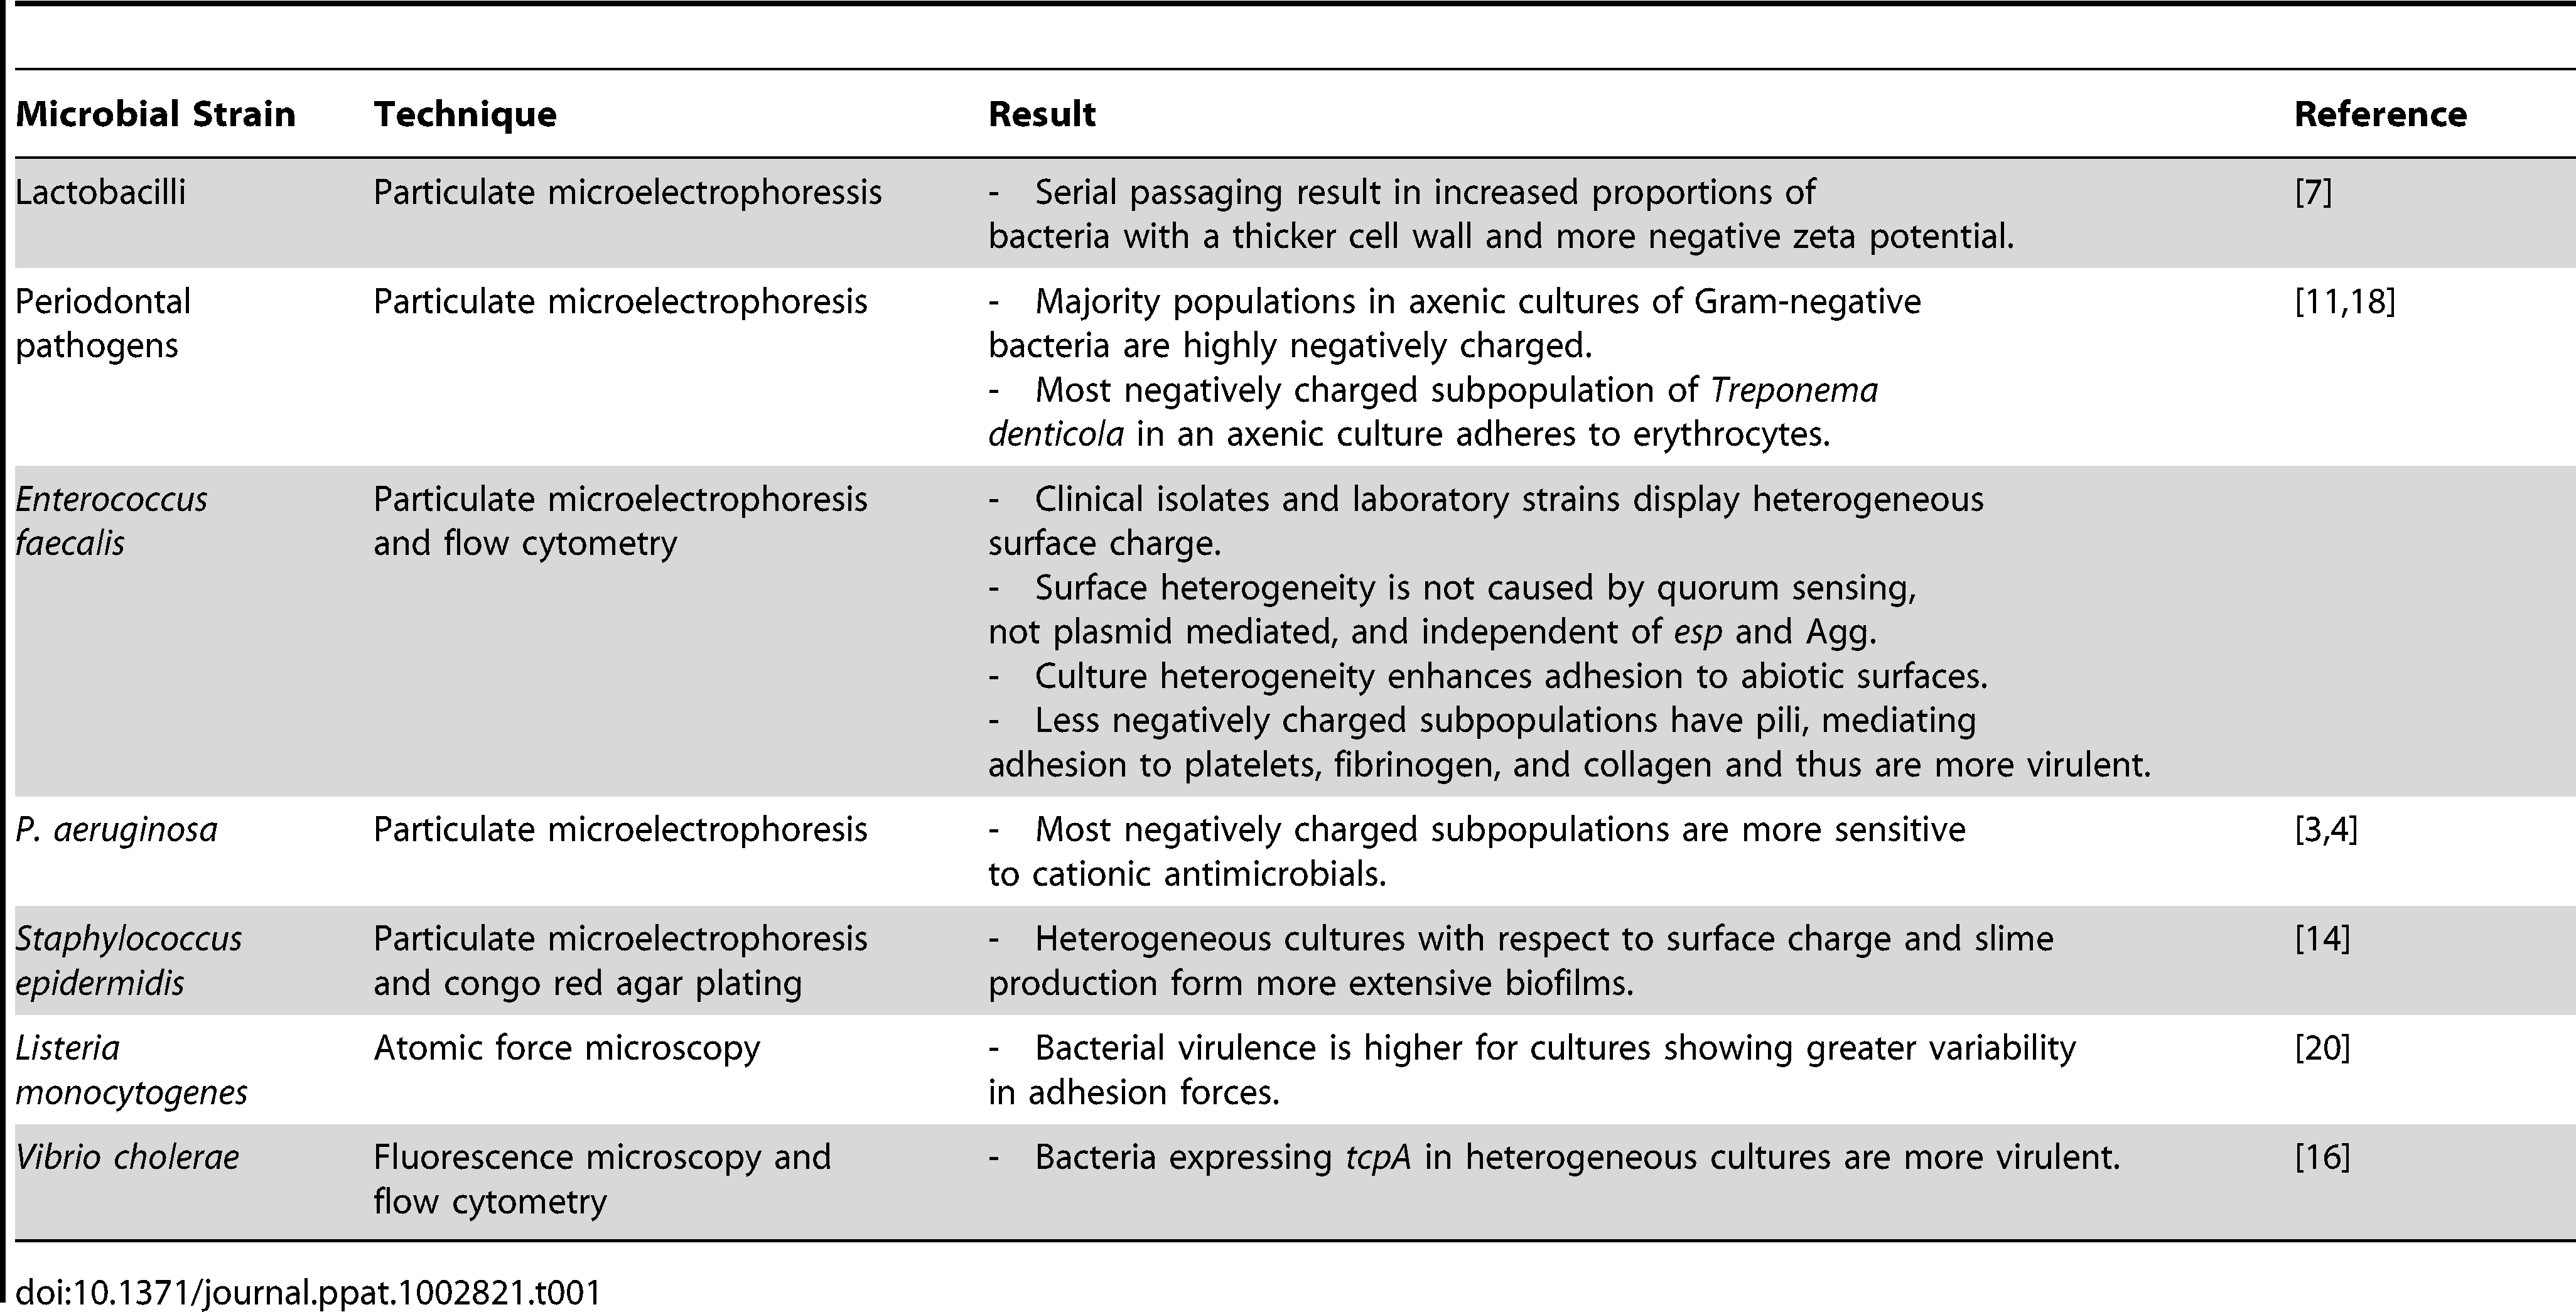 Summary of microbial strains for which clonal subpopulations expressing phenotypes with different cell surface properties have been found.